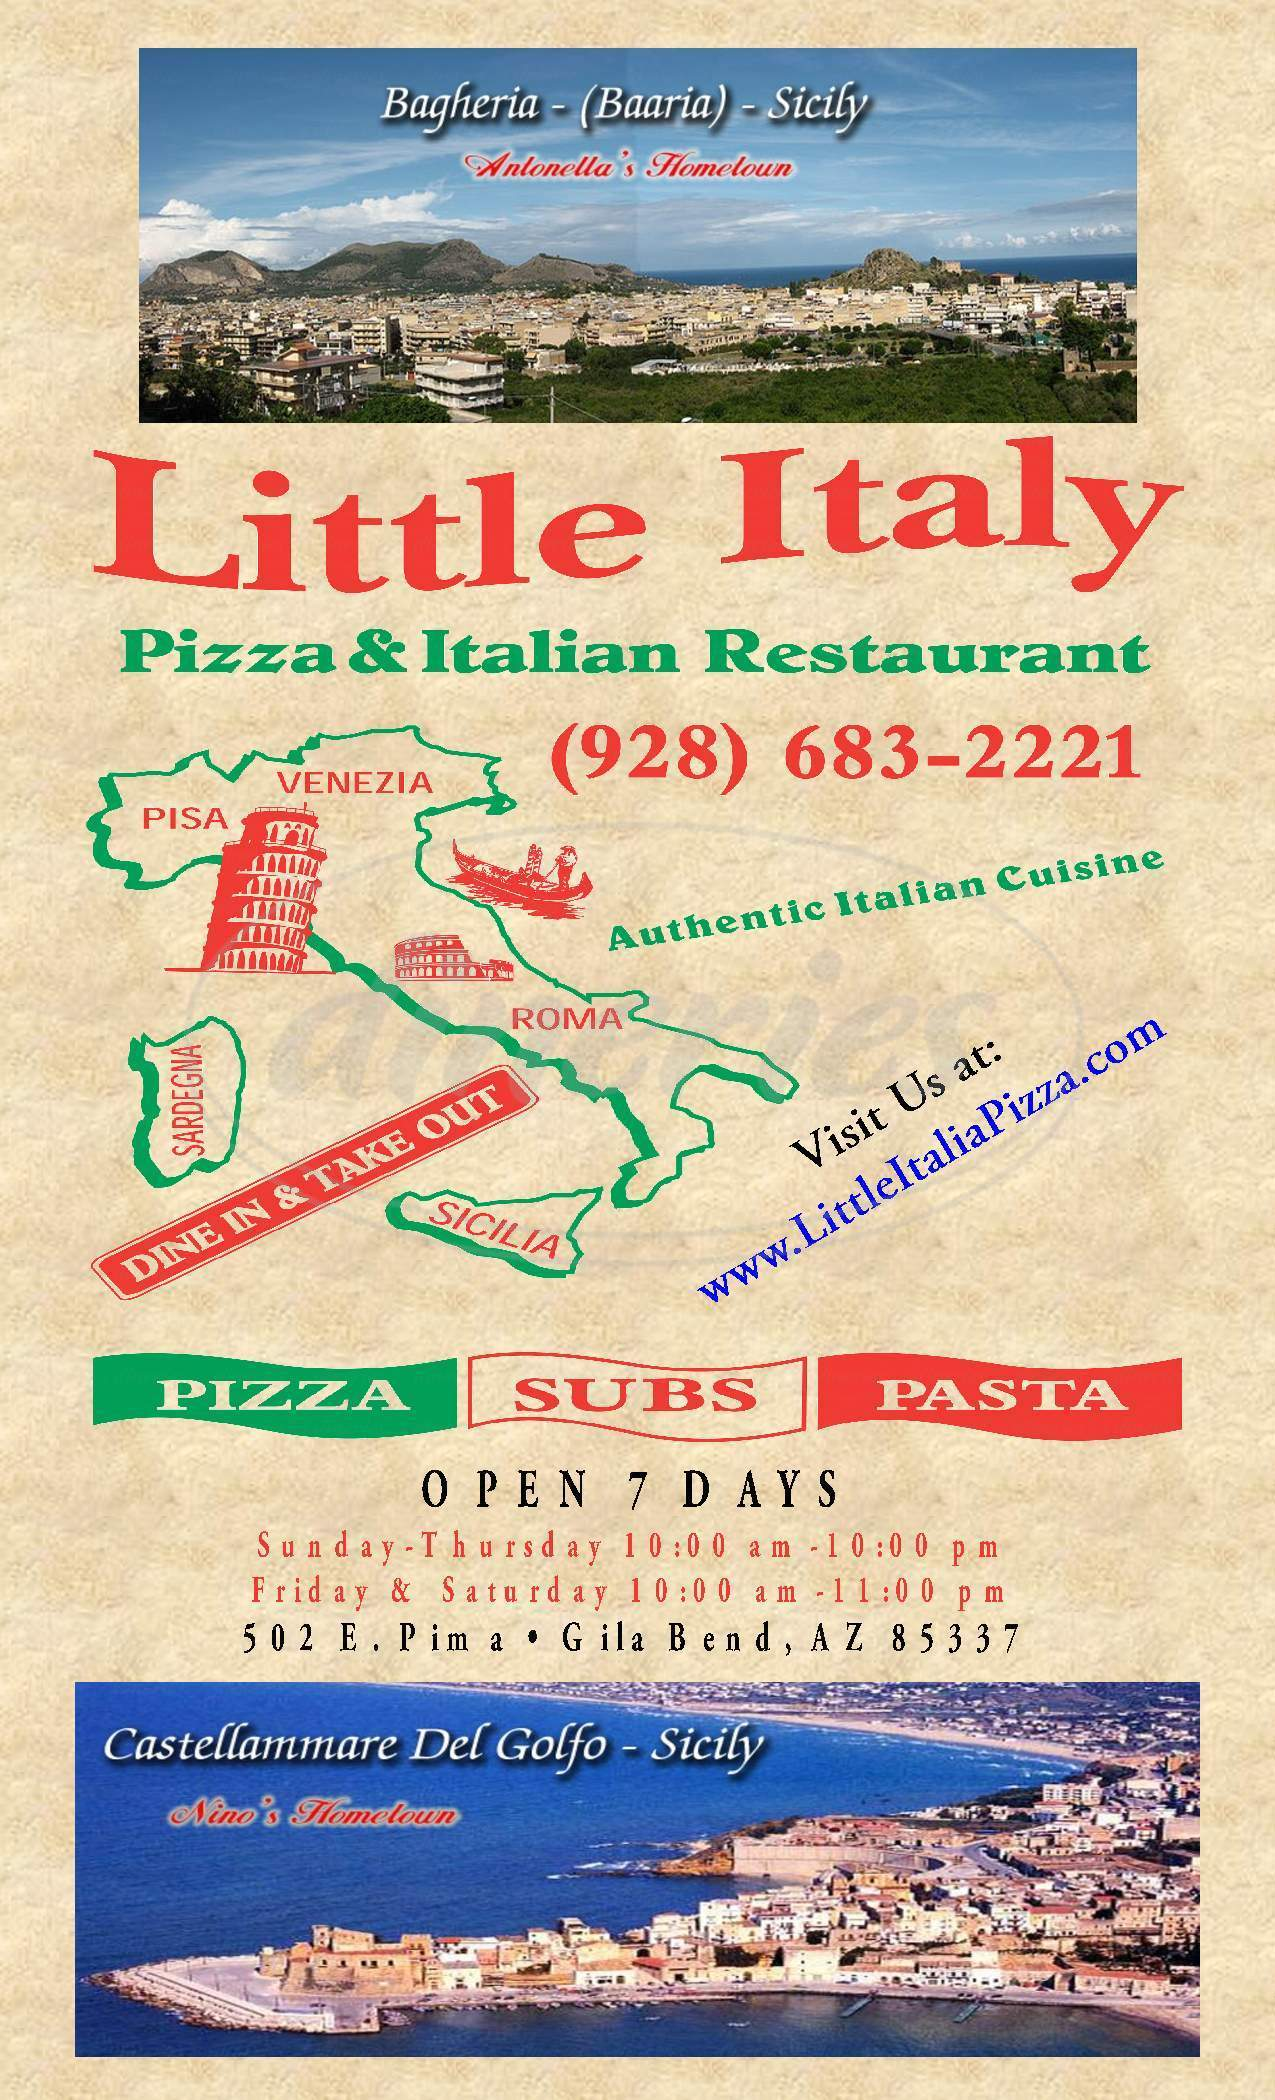 menu for Little Italy Pizza & Restaurant